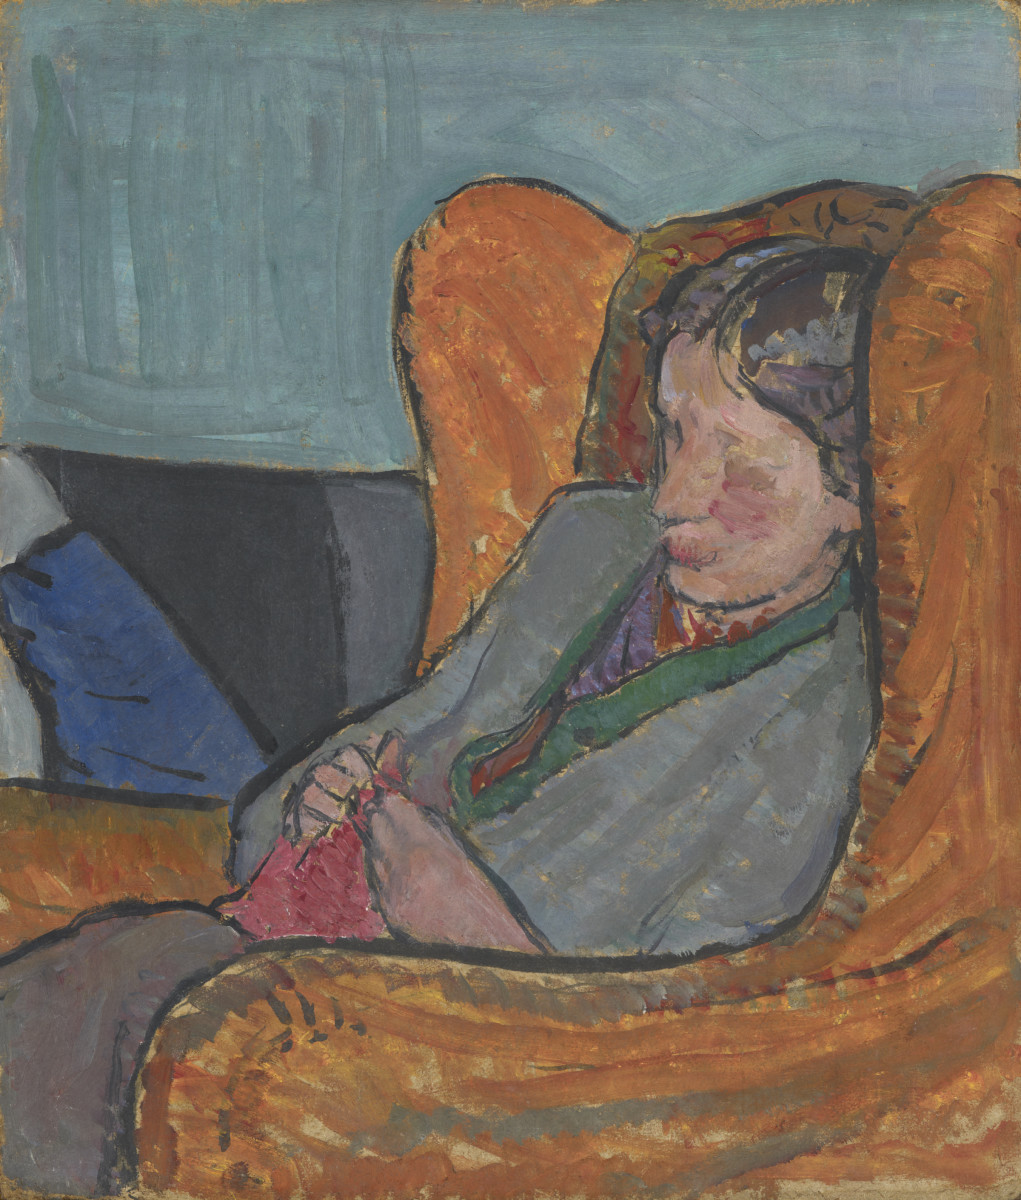 Bell depicts her sister Virginia reclining in a chair. Image courtesy of National Portrait Gallery, London, NPG 5933. Copyright National Portrait Gallery. All rights reserved